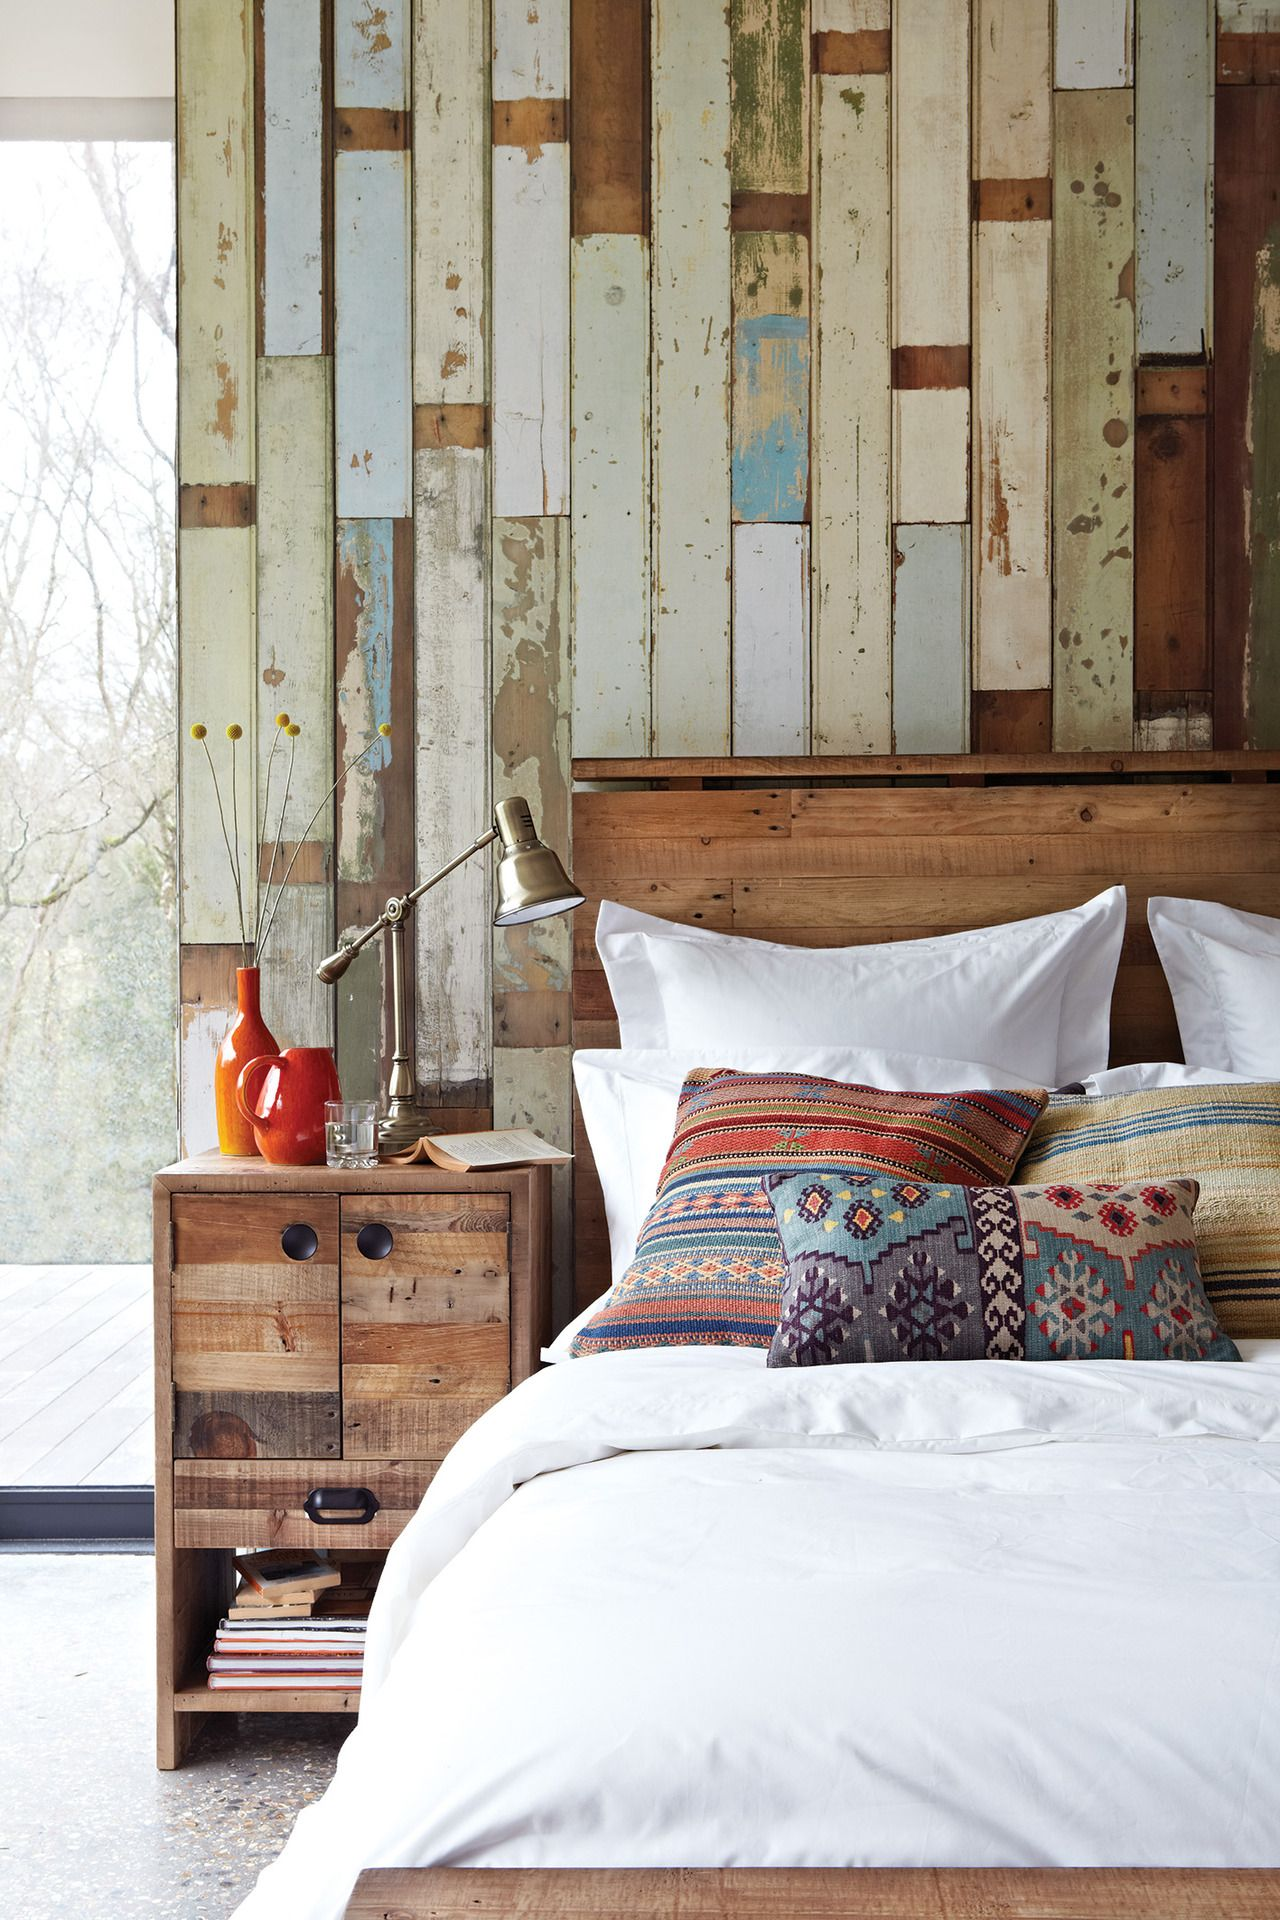 kovi simple blog and headboard wood reclaimed hacks inexpensive stikwood